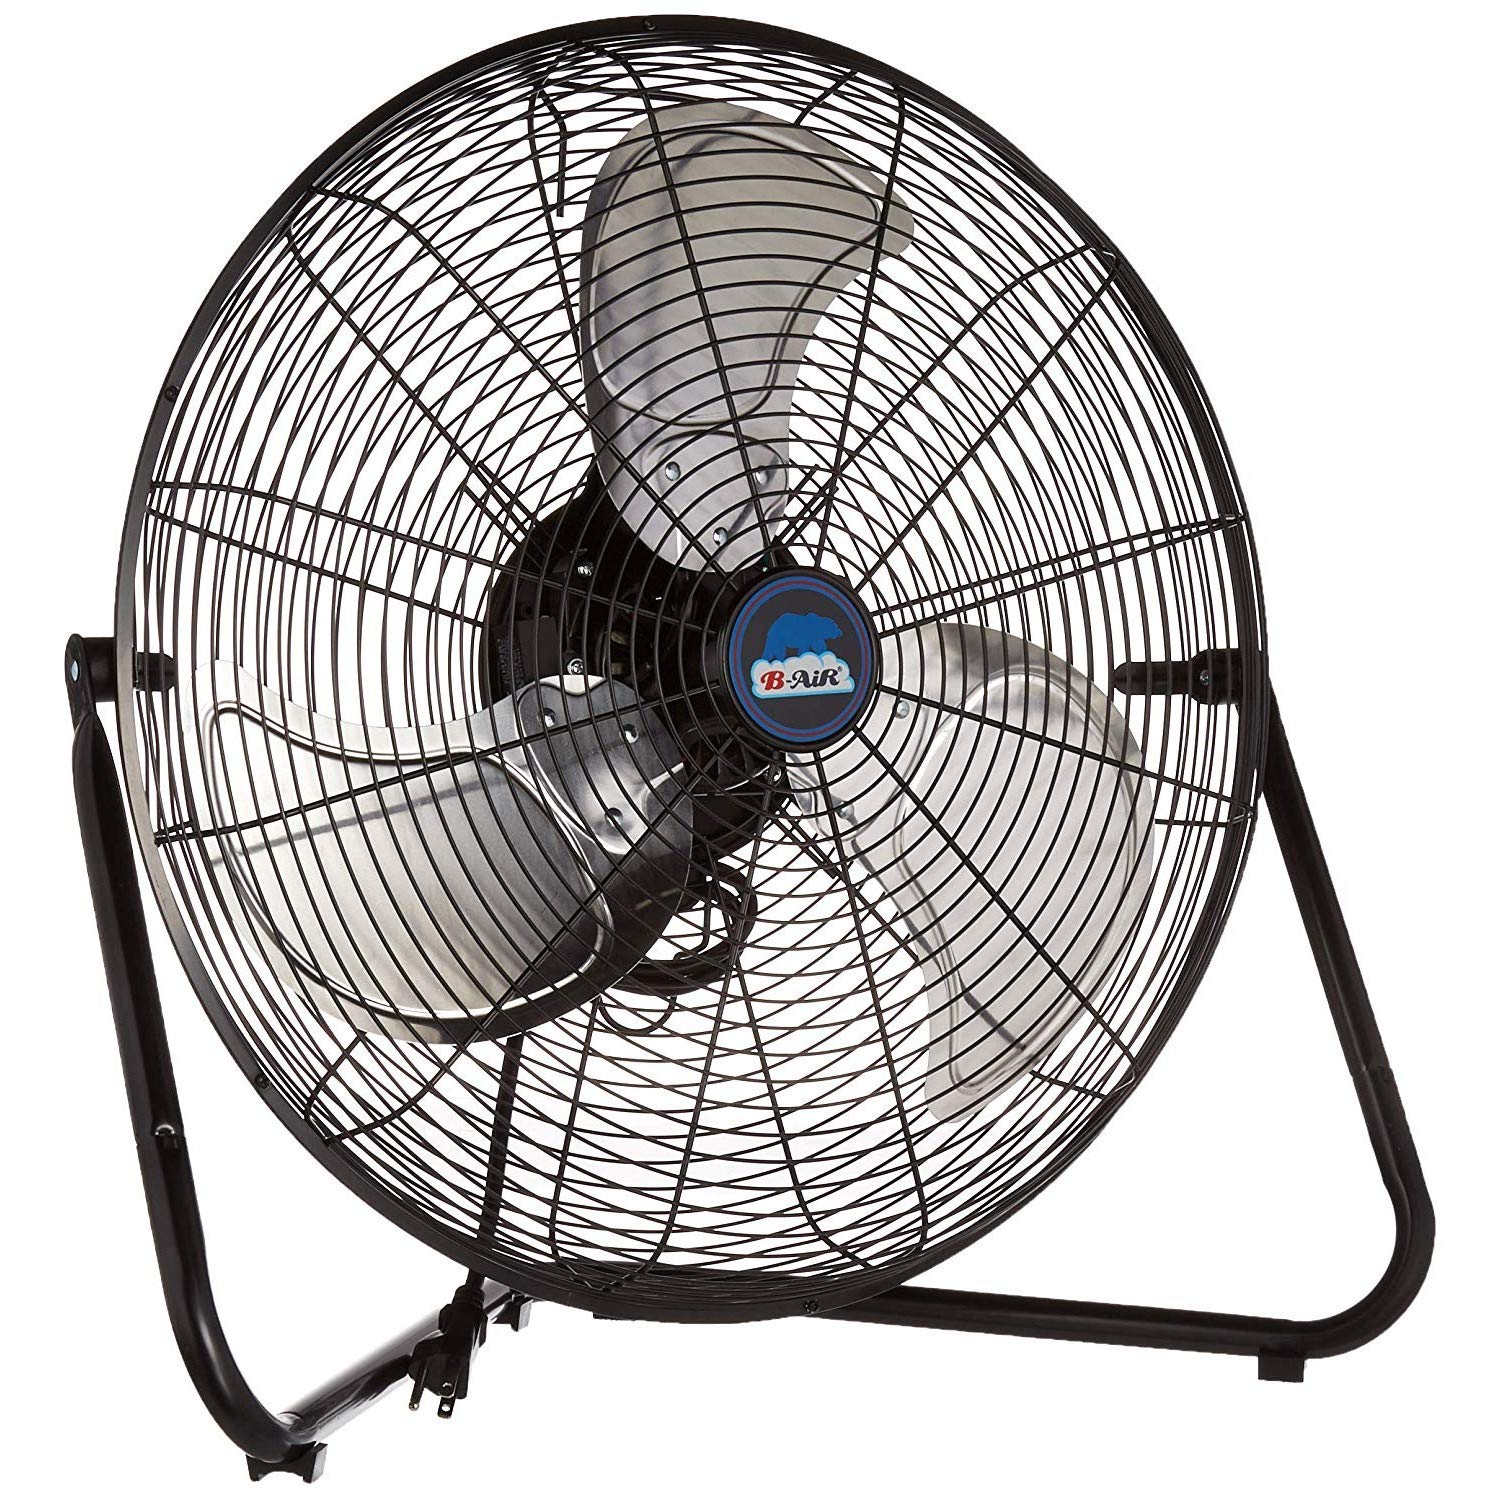 B-Air High Velocity Electric Floor Fan